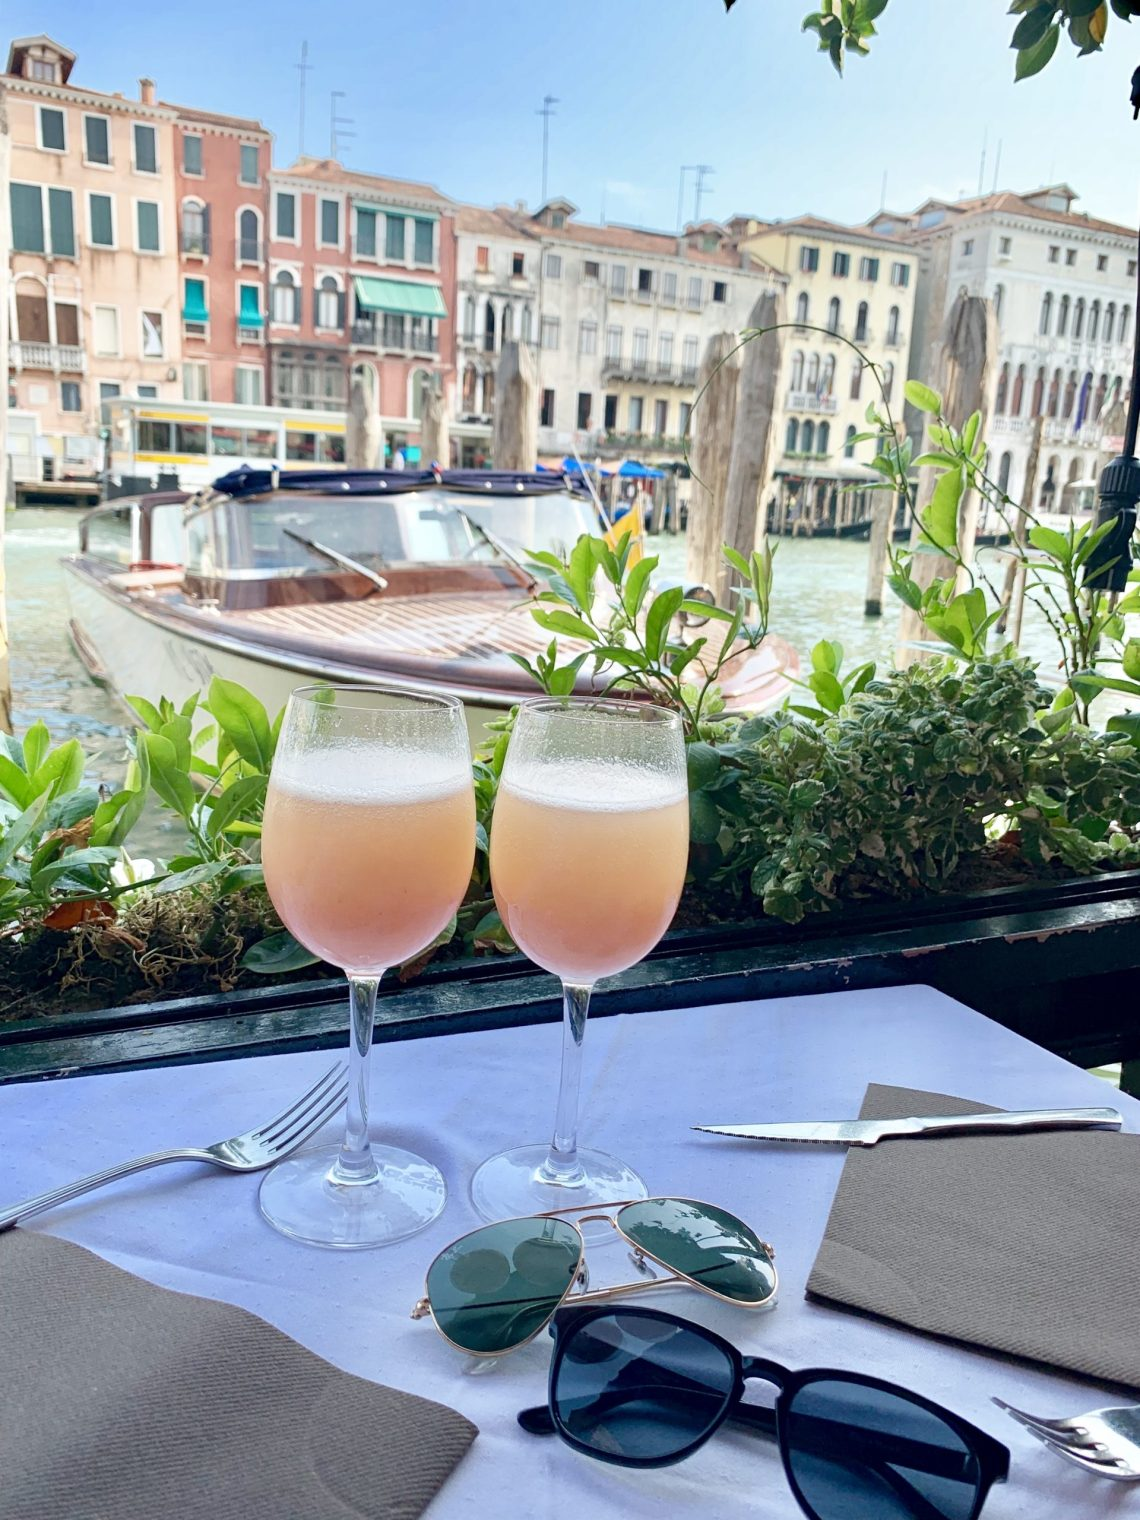 venice italy travel guide _1075